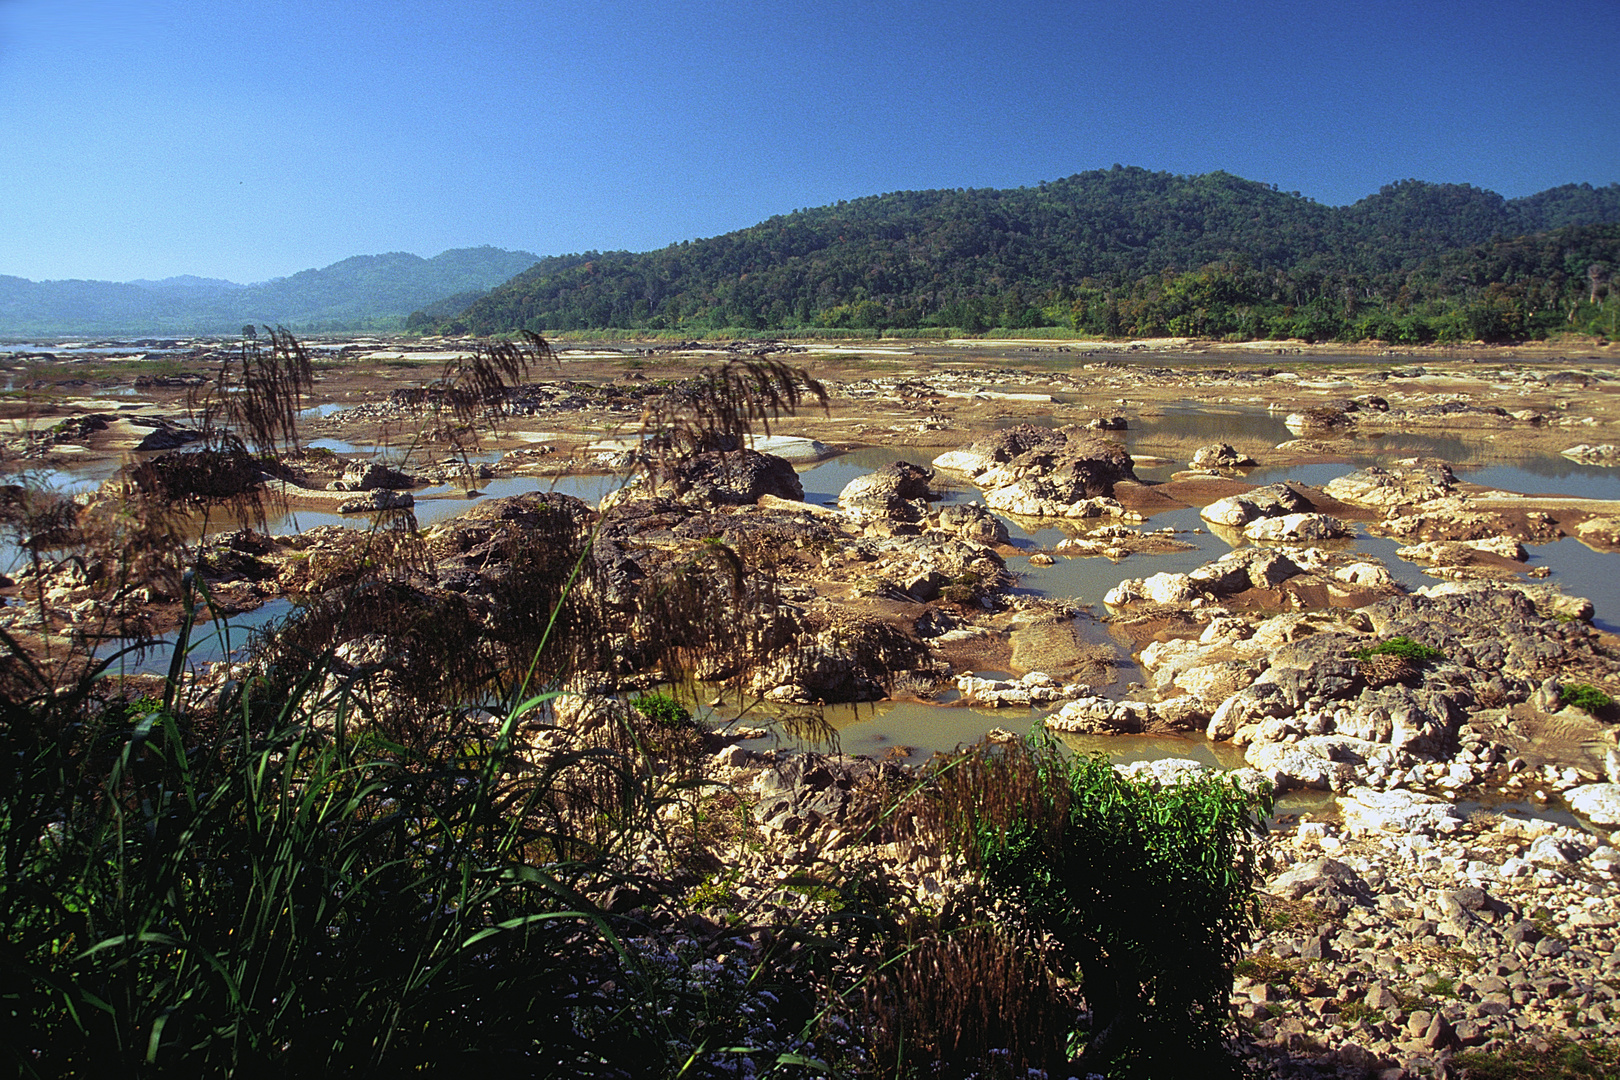 The parched river bed of the Mekong